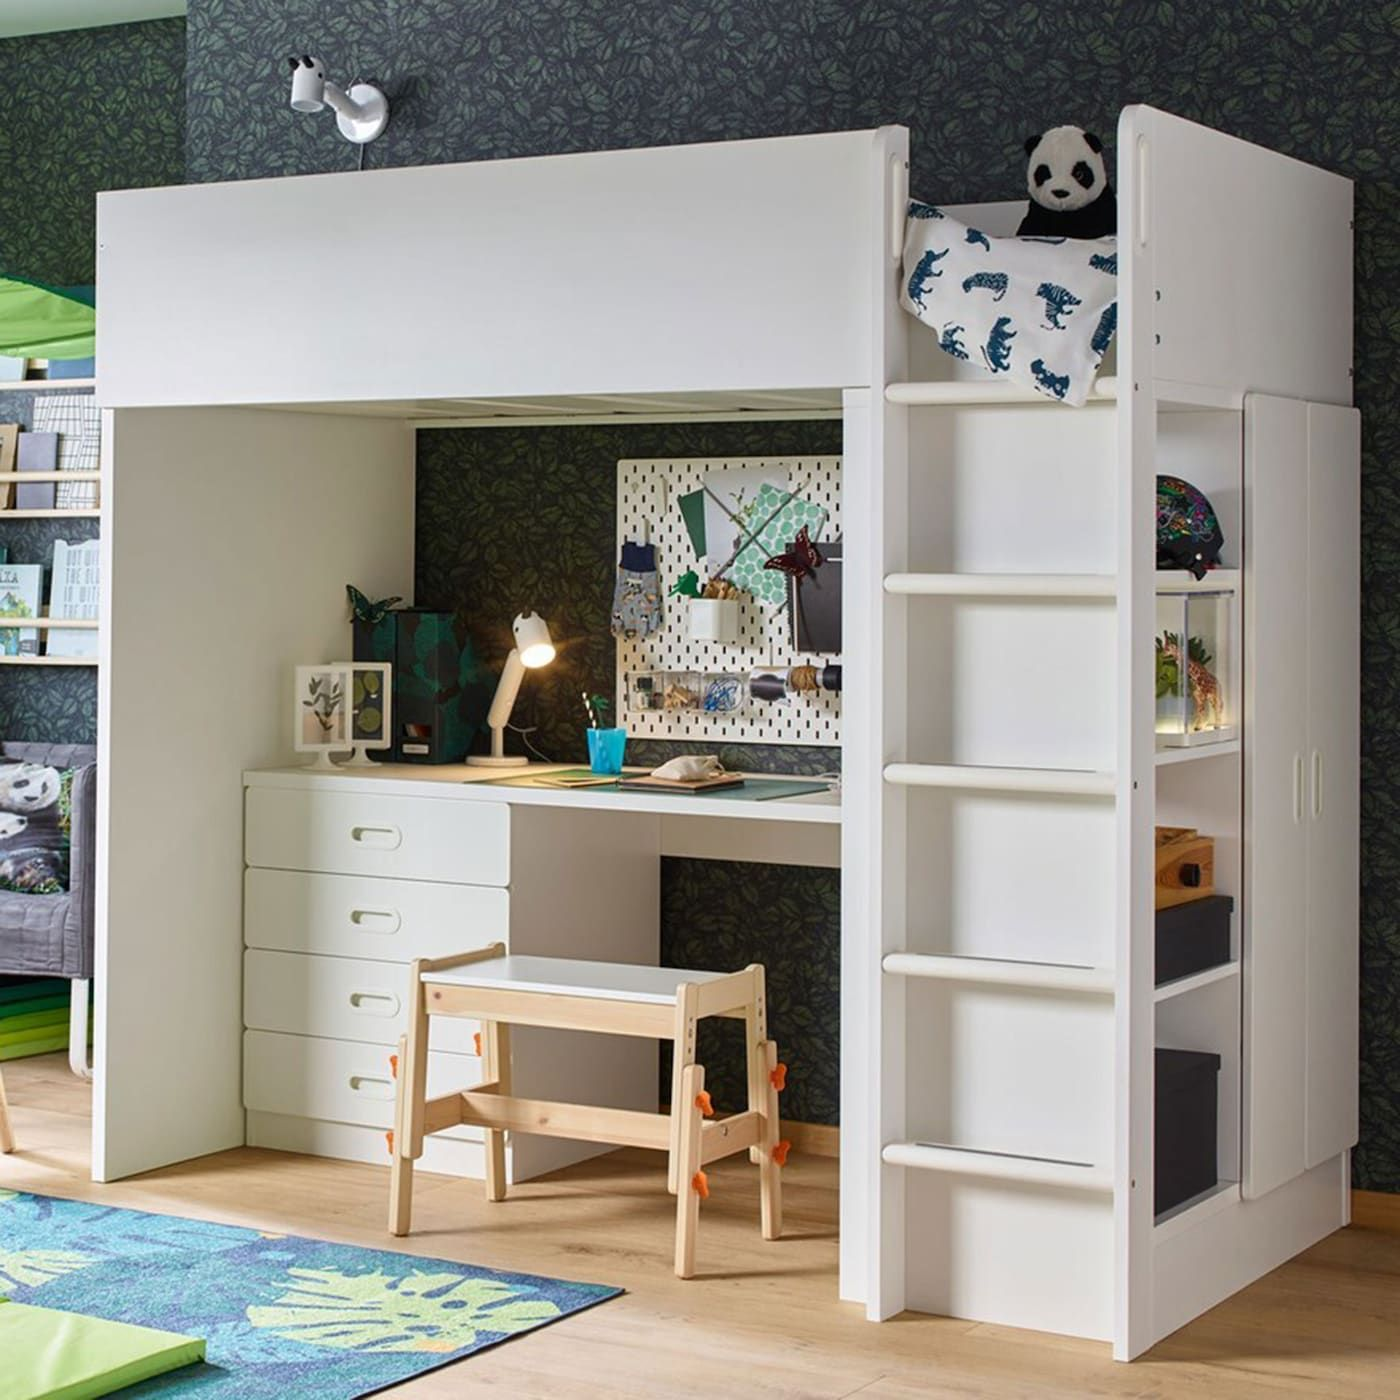 For kids with wild ideas Stuva loft bed, Adult loft bed